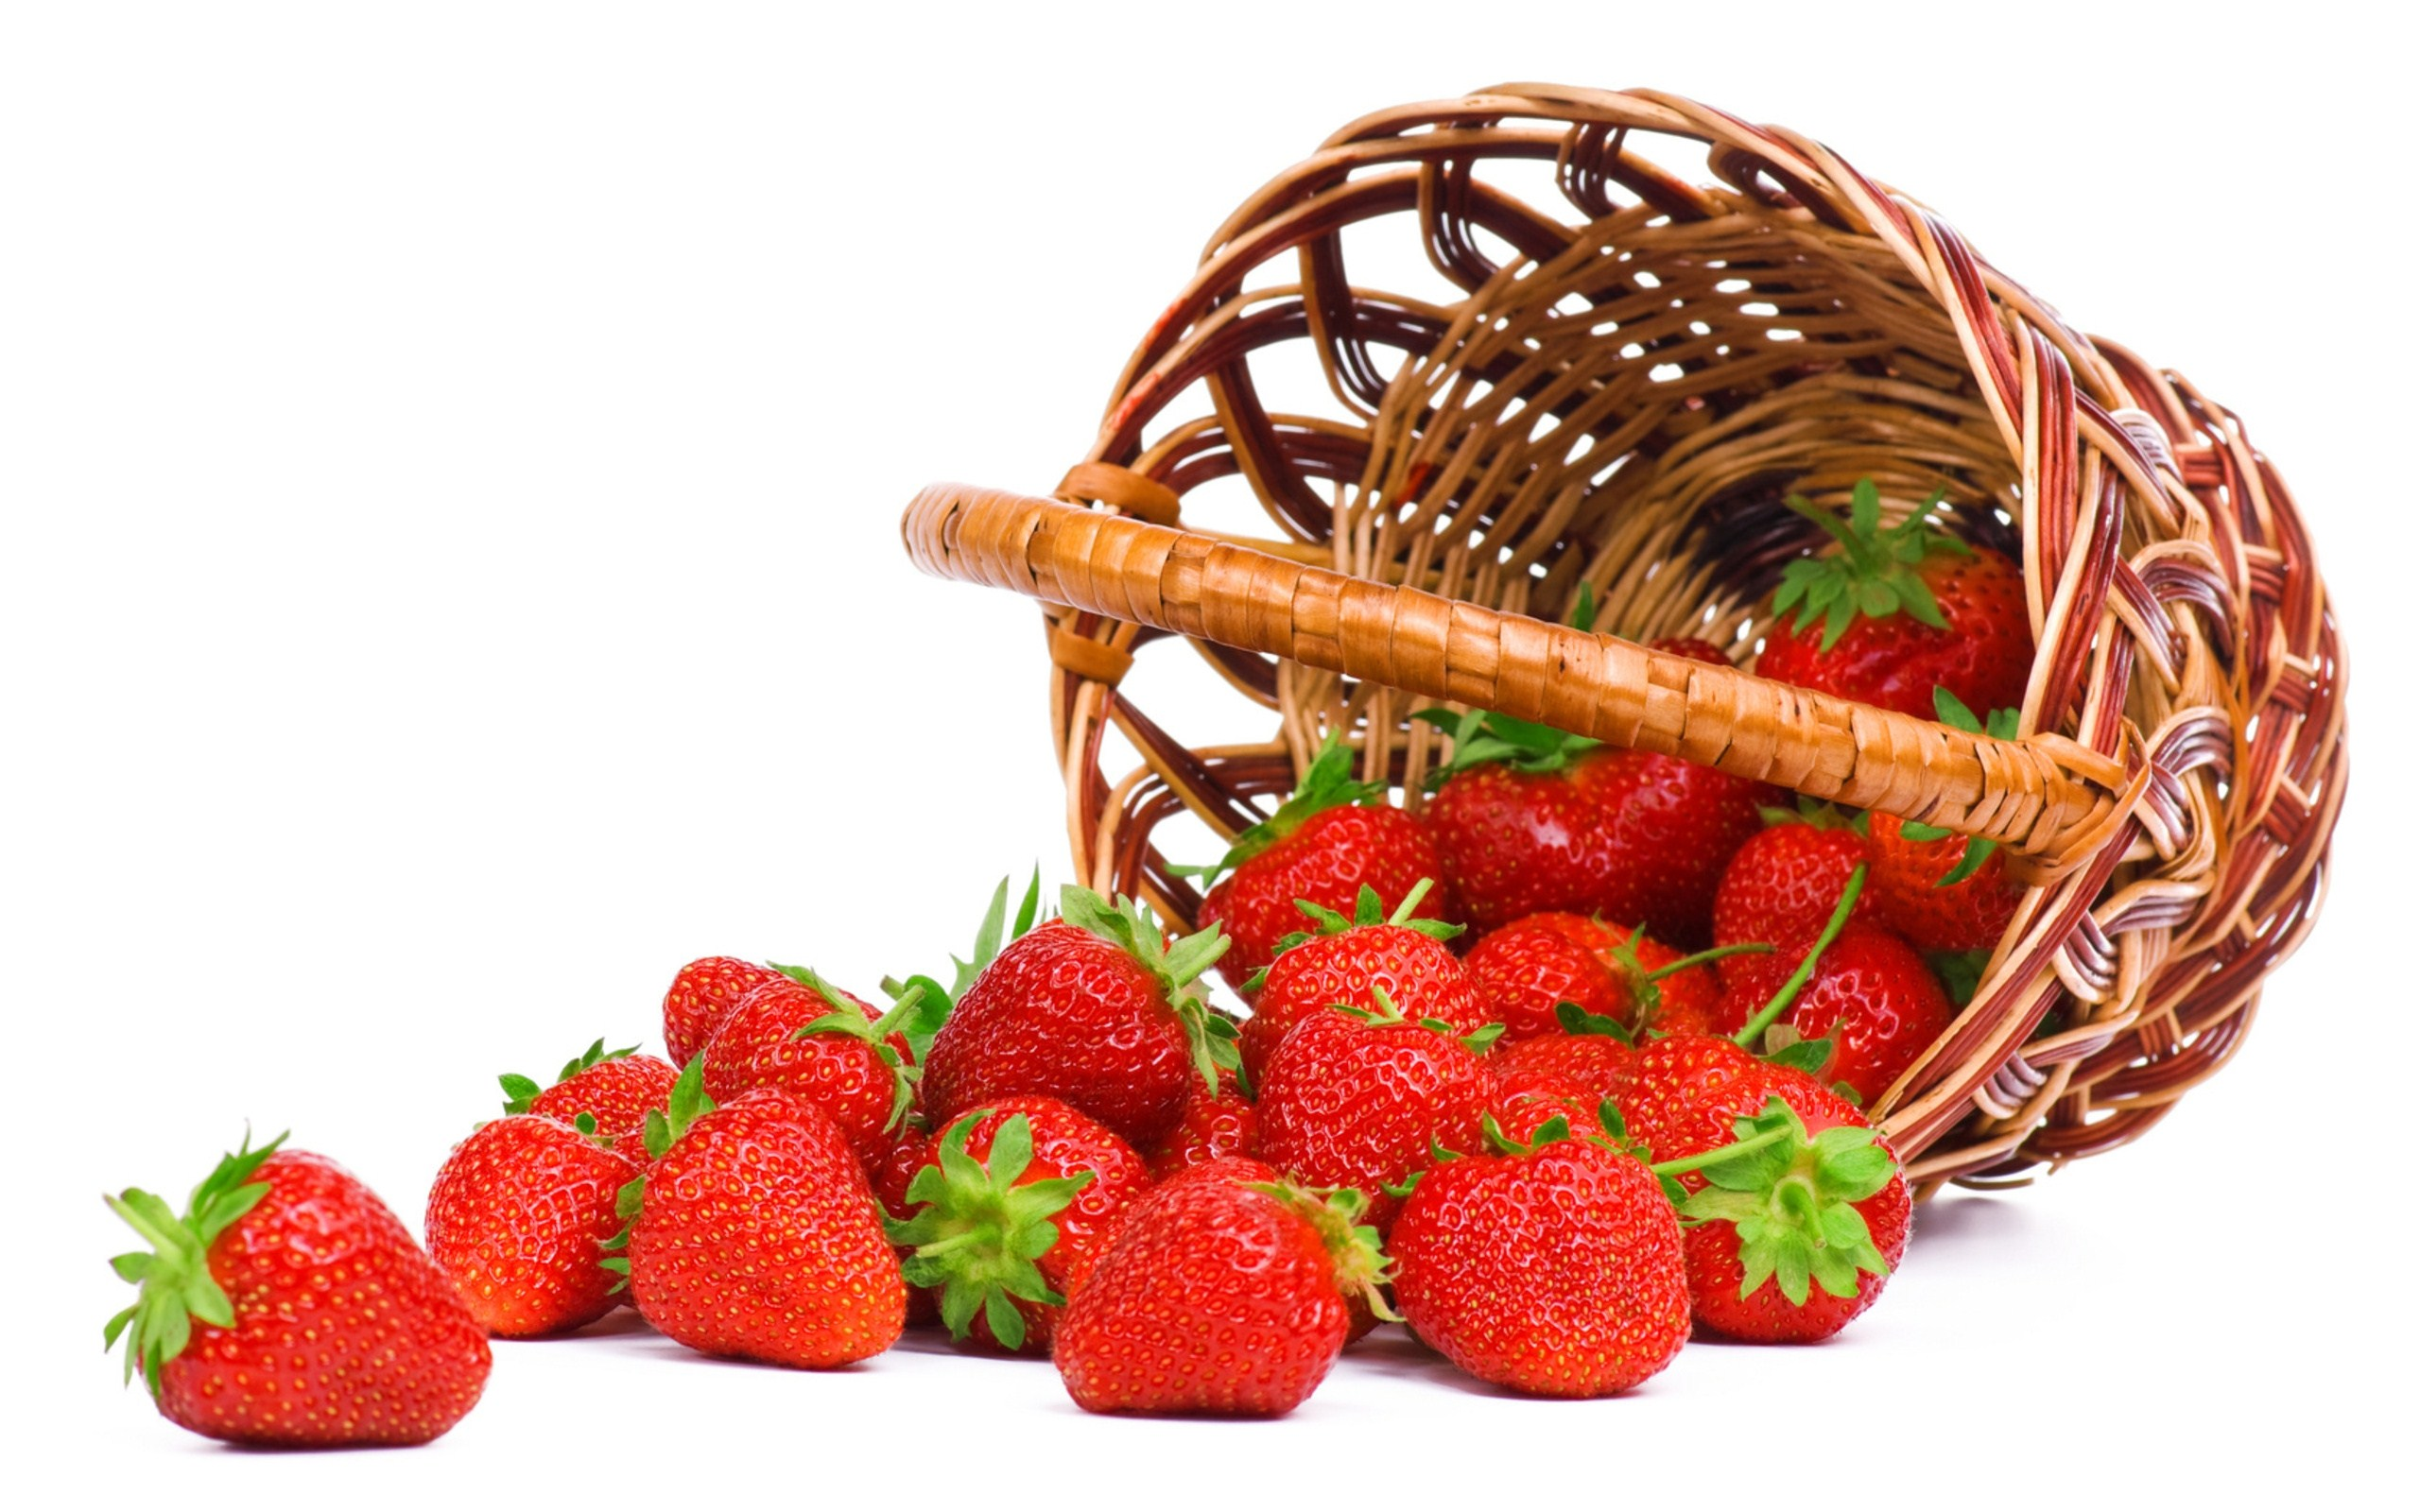 Strawberry Food Basket Wallpaper 2560x1600